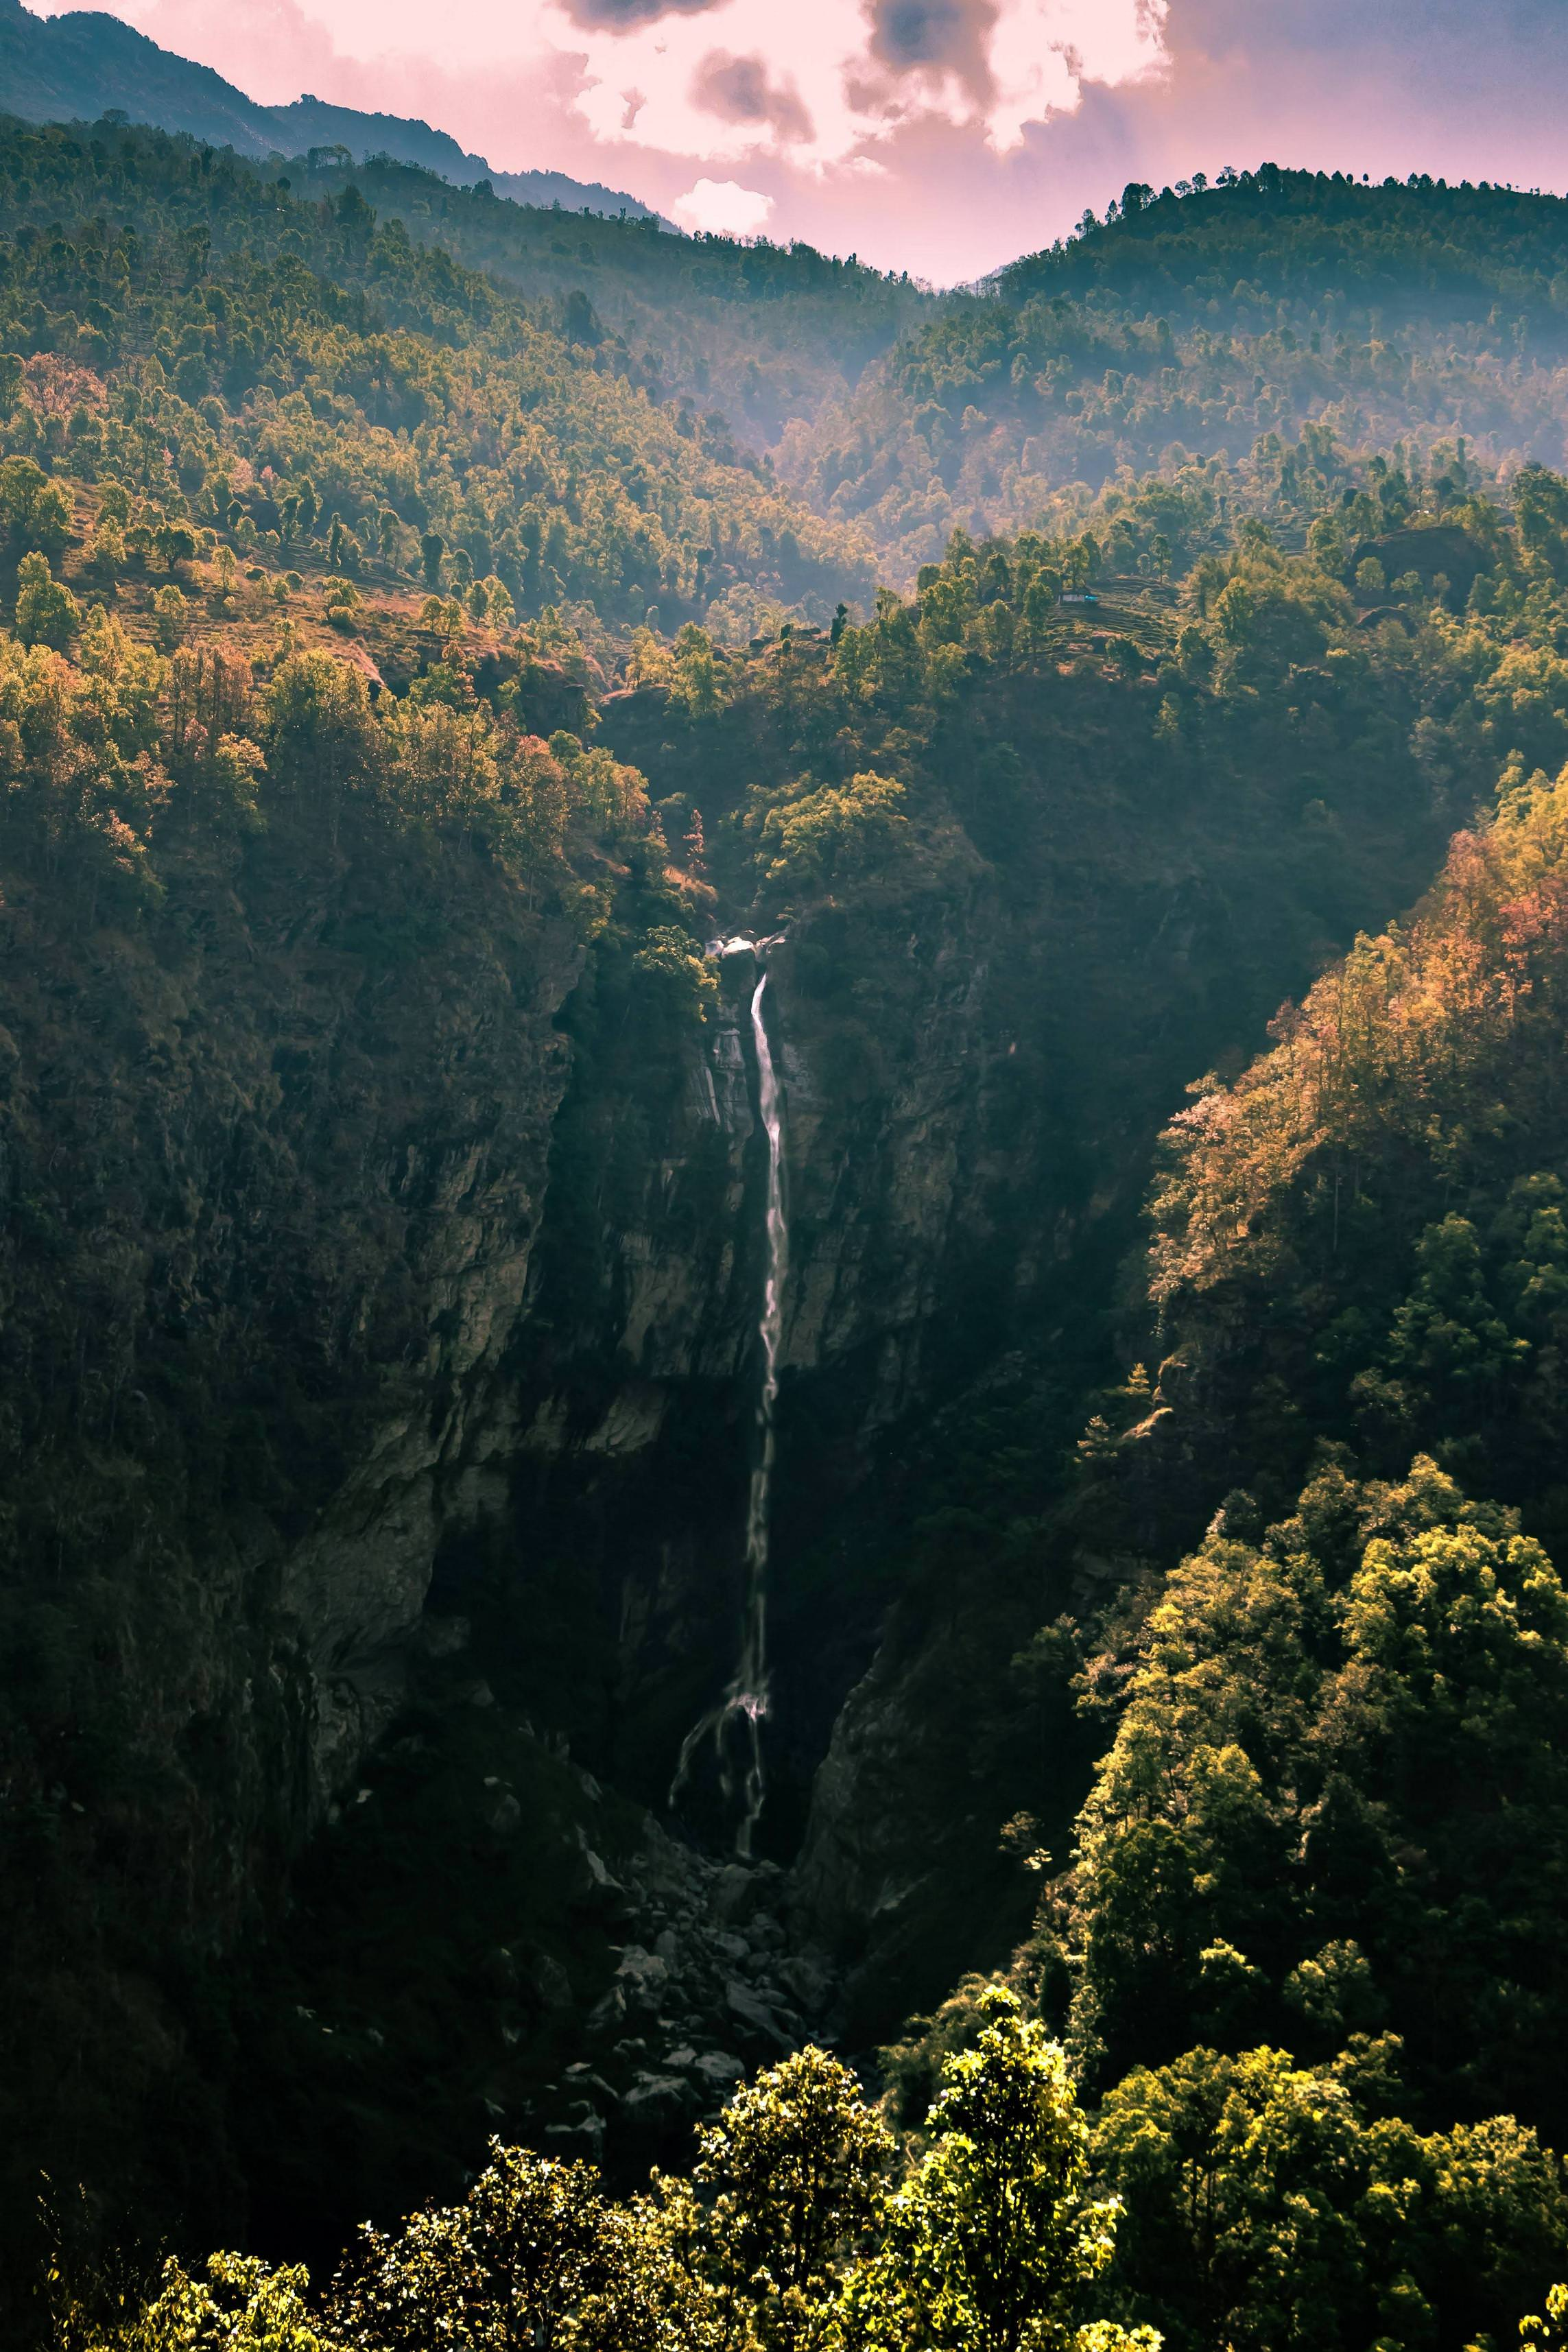 Small waterfall in the foothills of the Himalayas - Daaaffie - bit.ly2rVMQJc